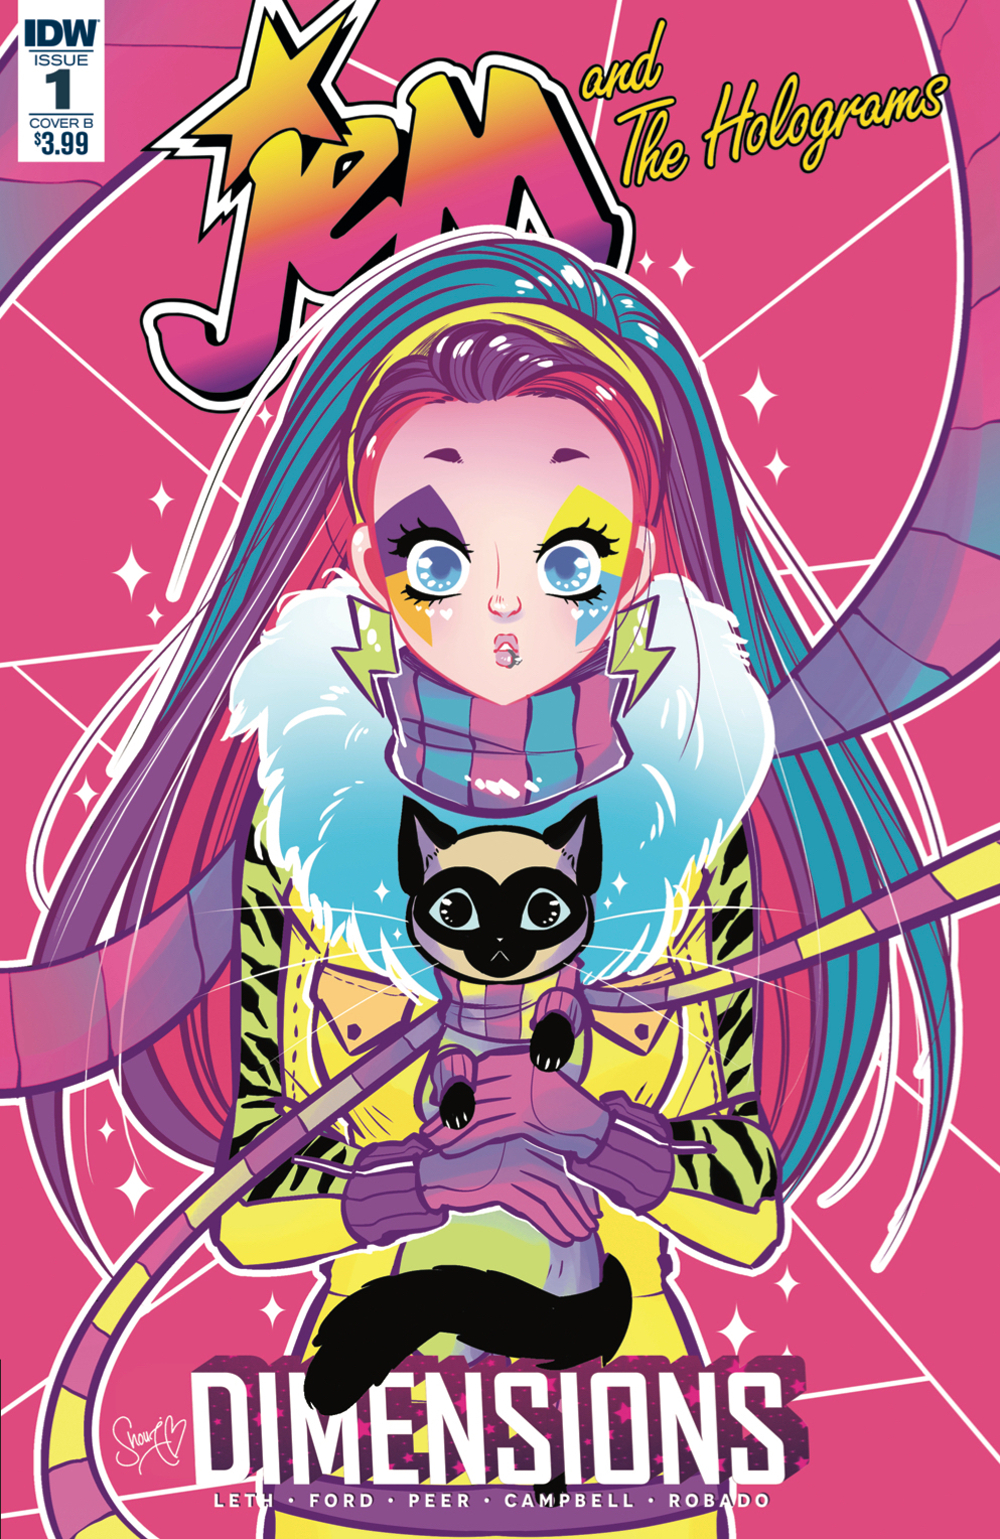 JEM & THE HOLOGRAMS DIMENSIONS #1 CVR B ROBADO